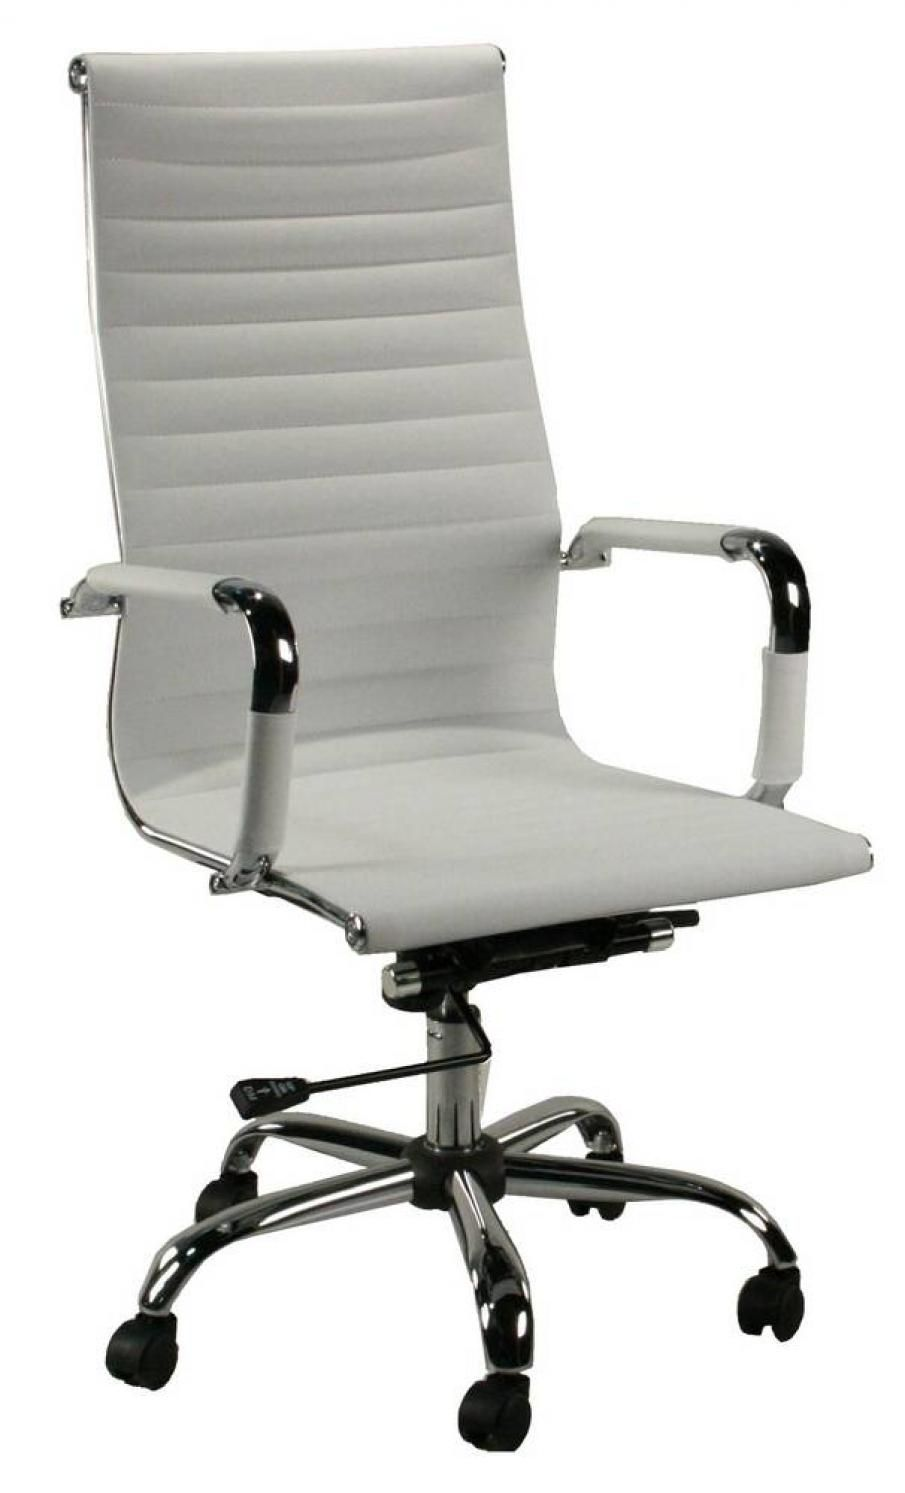 White Contemporary High Back Rolling Office Chair White Office Chair Leather Office Chair Modern Office Chair